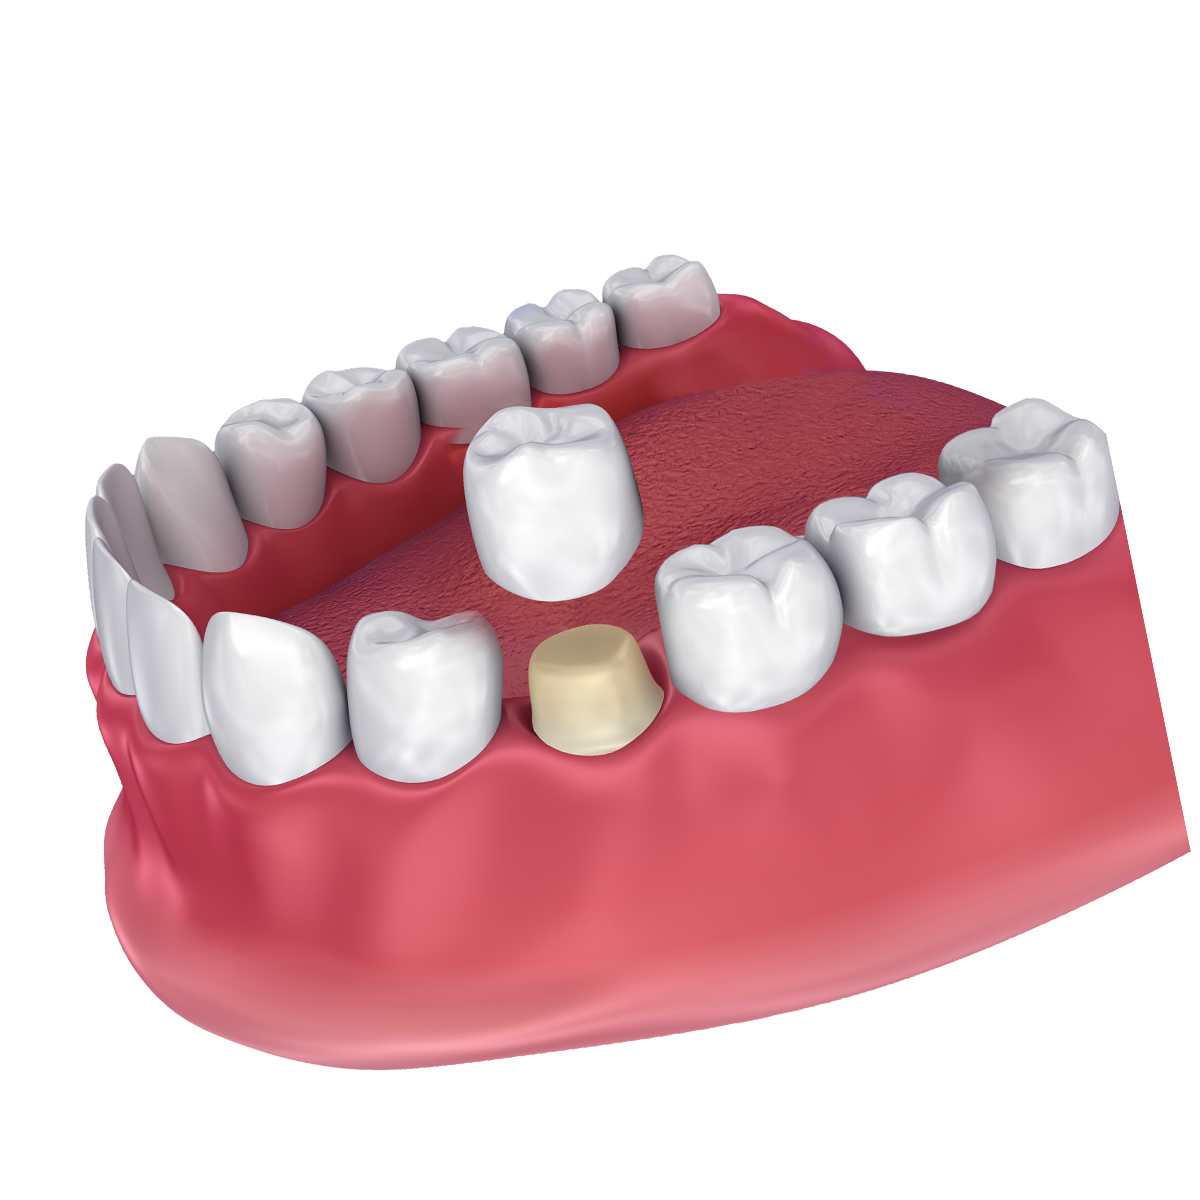 An illustration of a dental crown being placed on a tooth